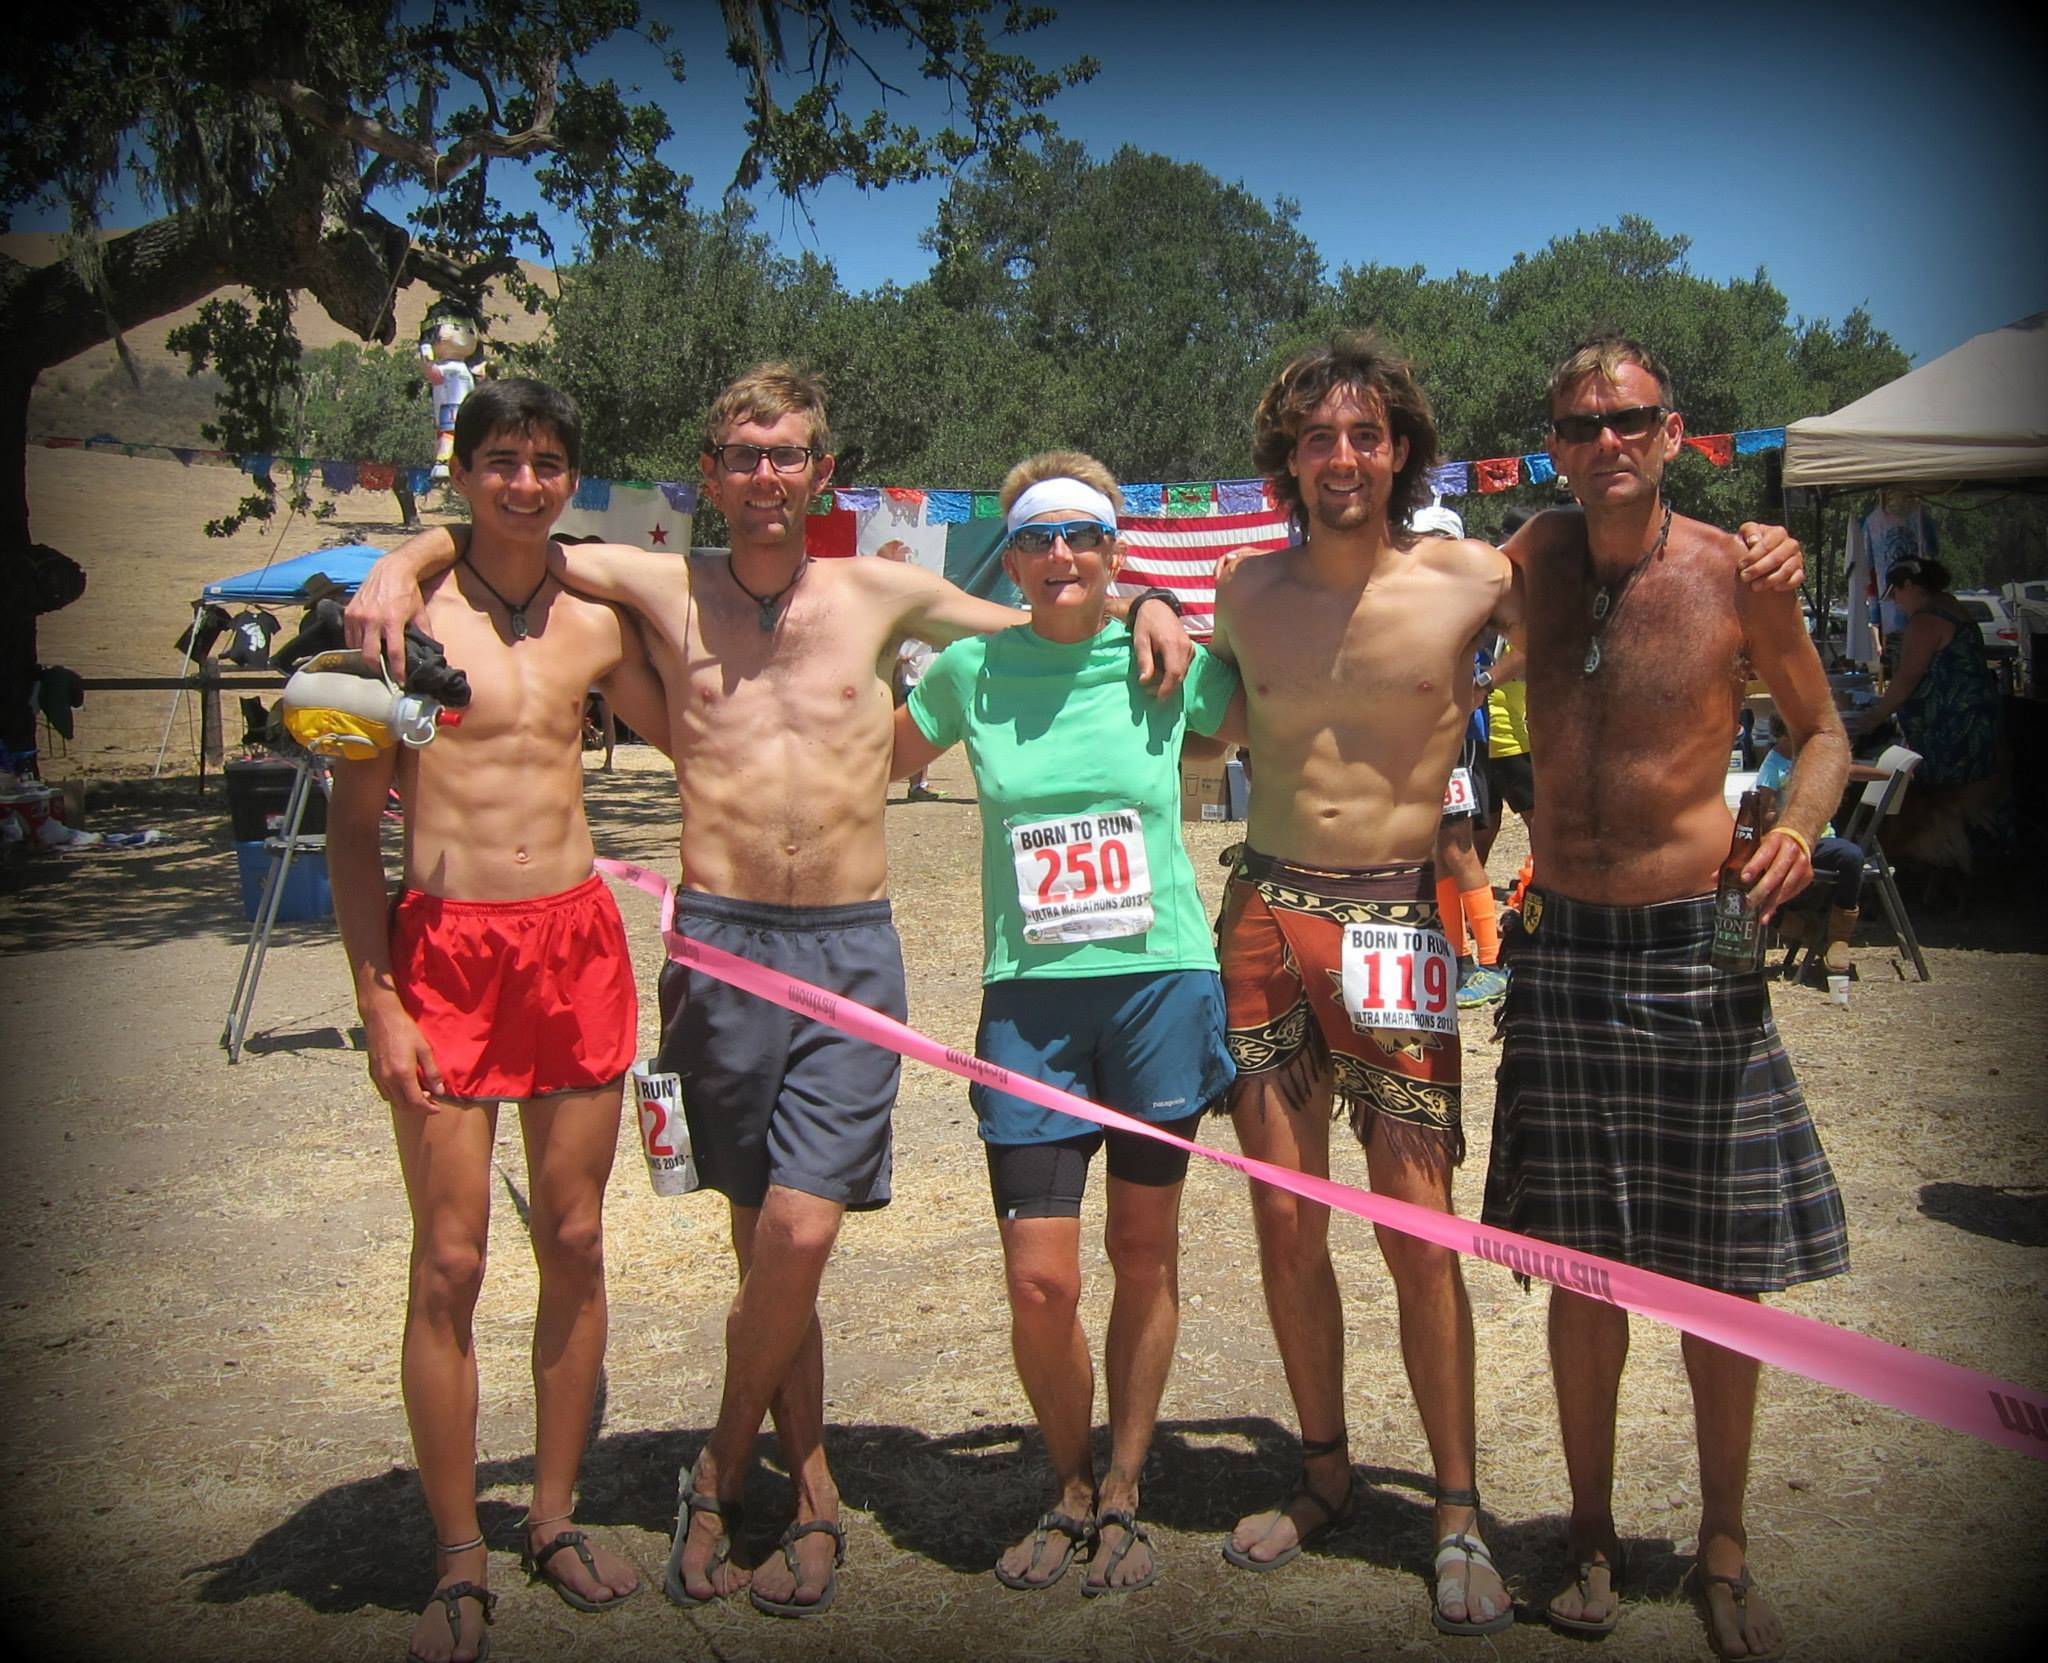 Greg, Me, Tracy, Bryan, and Sweeney. Post race.